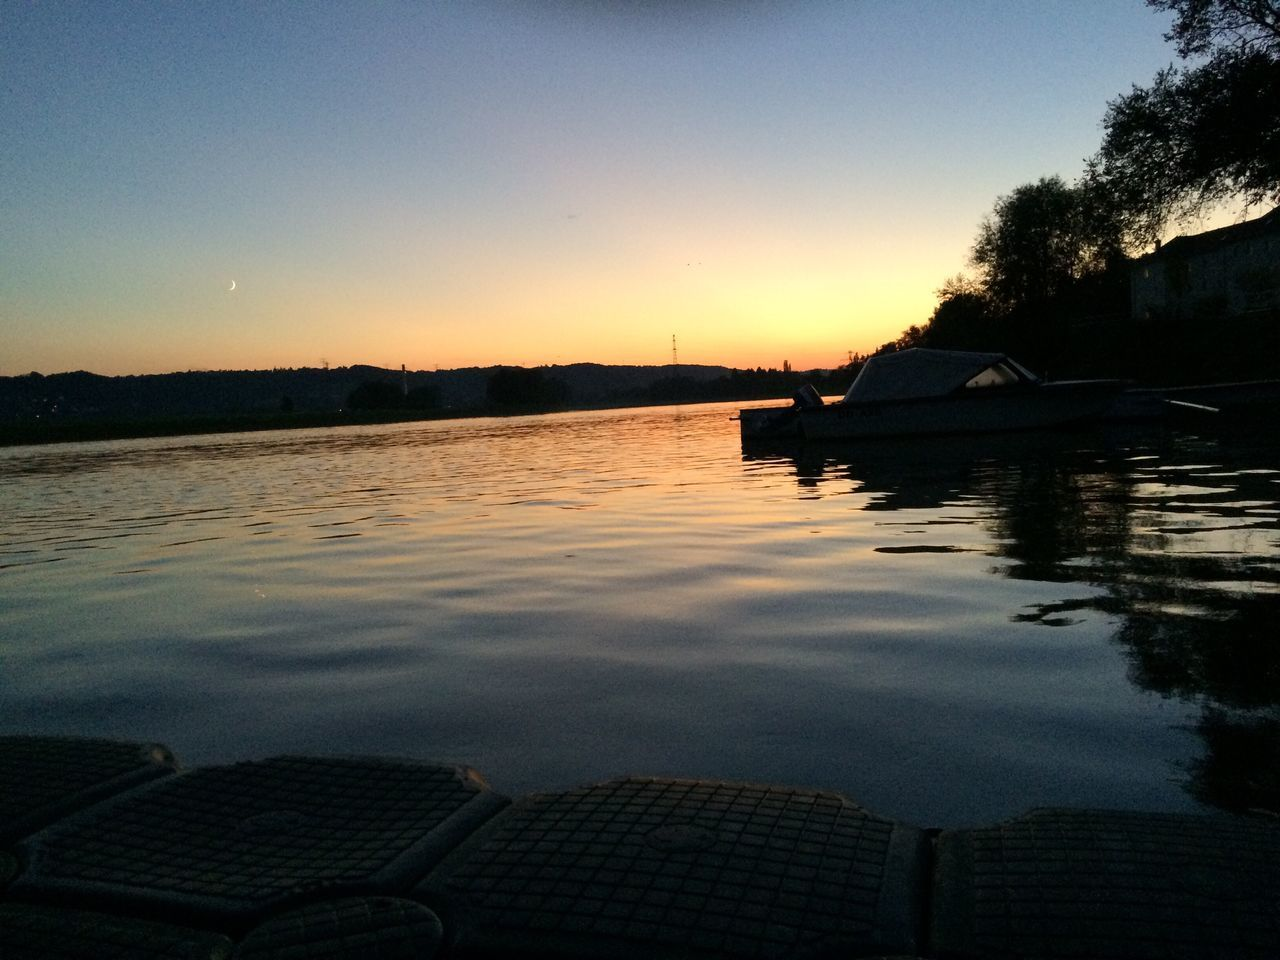 Sunset Evening Elbe River River View Water Reflection Water Surface Nature No People NoEditNoFilter Noedit Nofilter